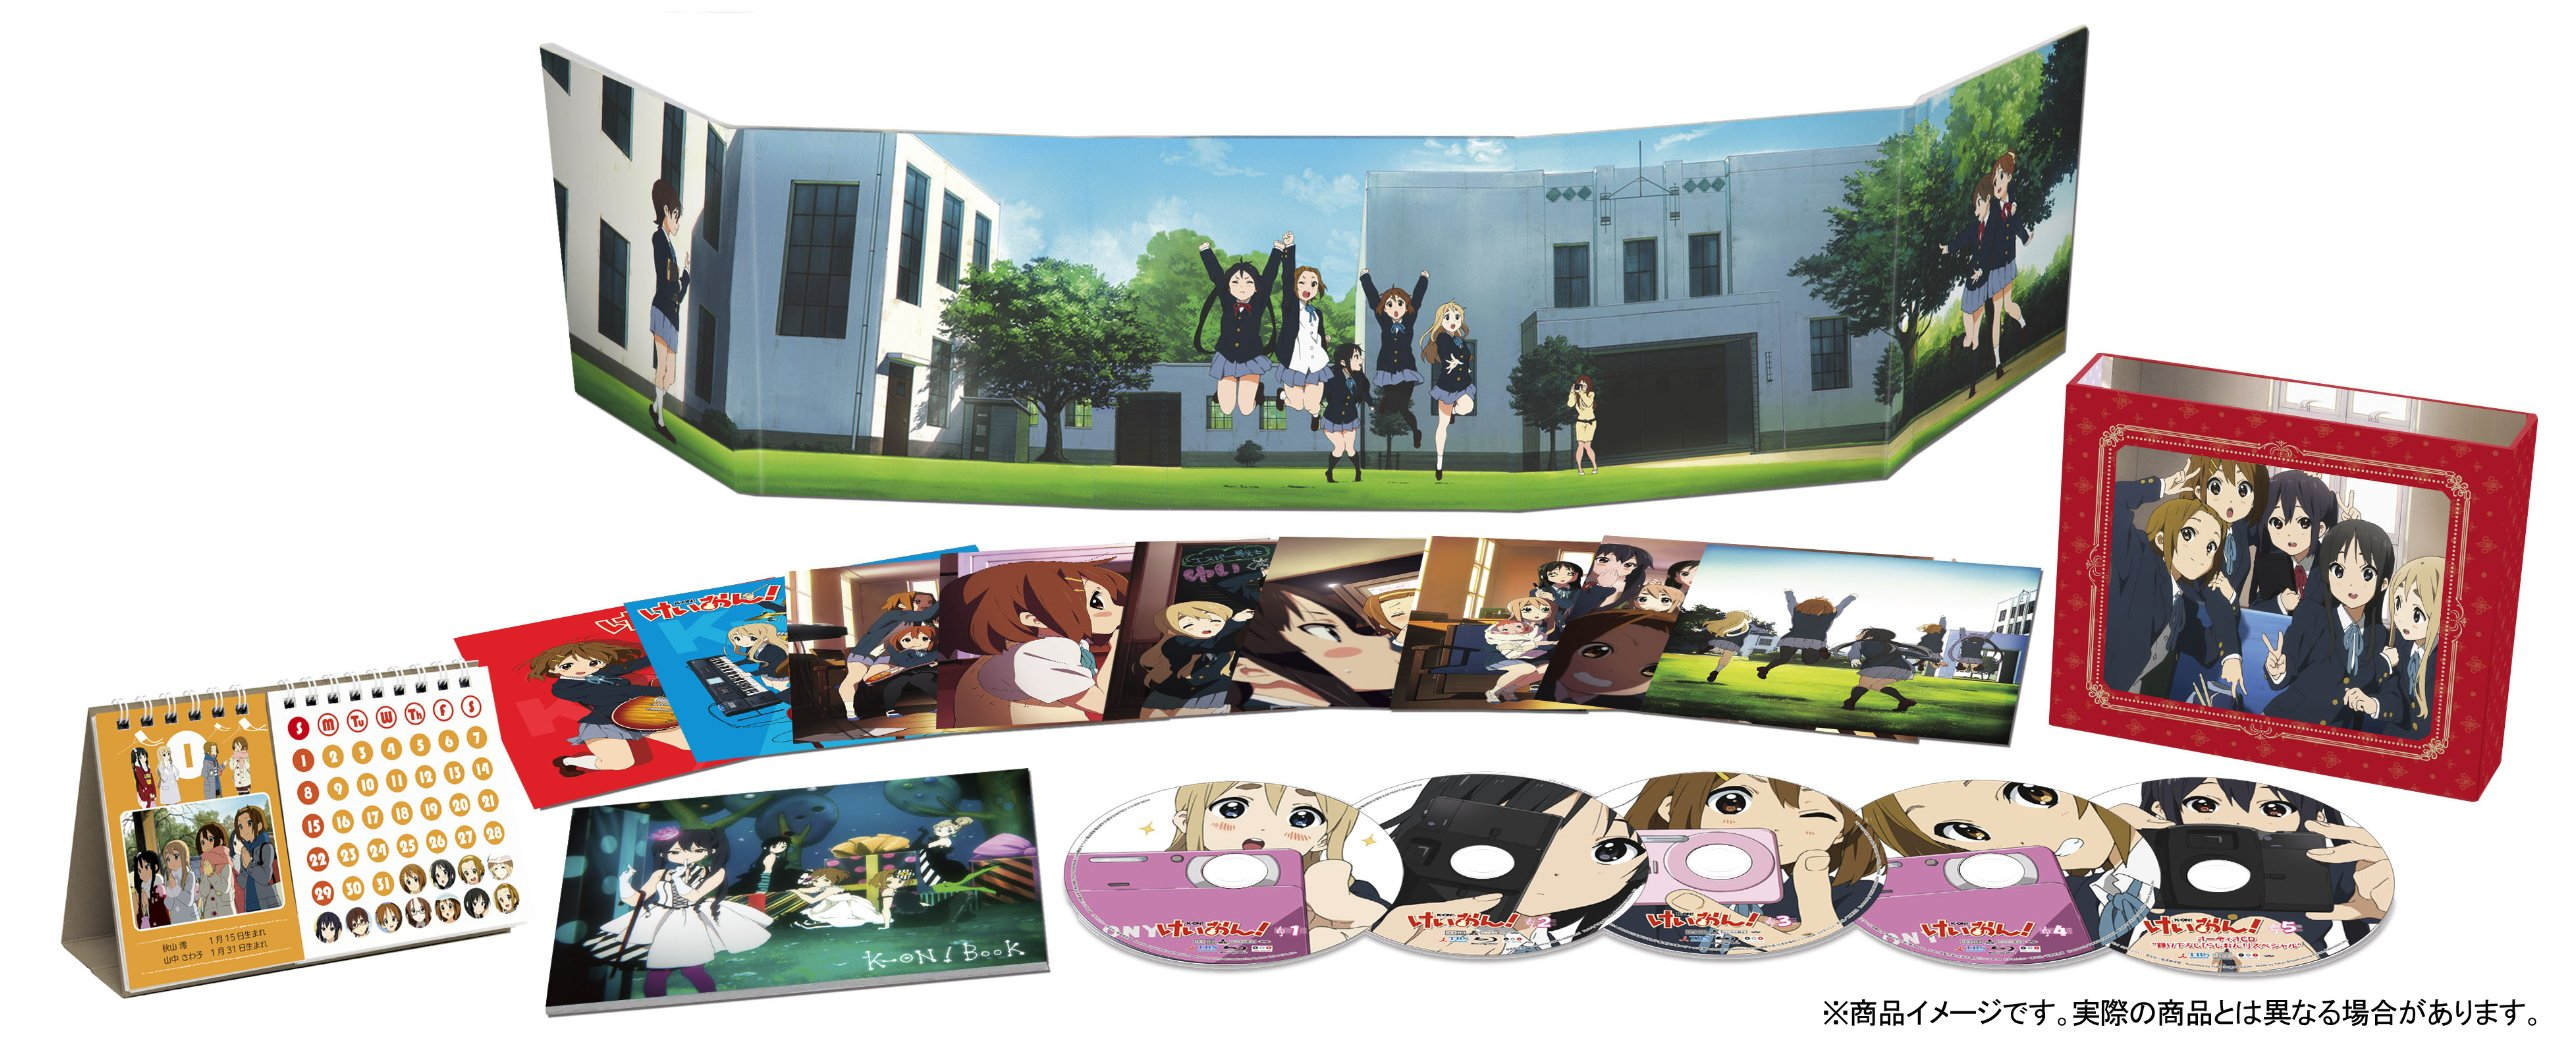 [百度][轻音少女 第一季][K-ON!][BDrip][1920×1080][H264 FLAC MKV][15.9G]